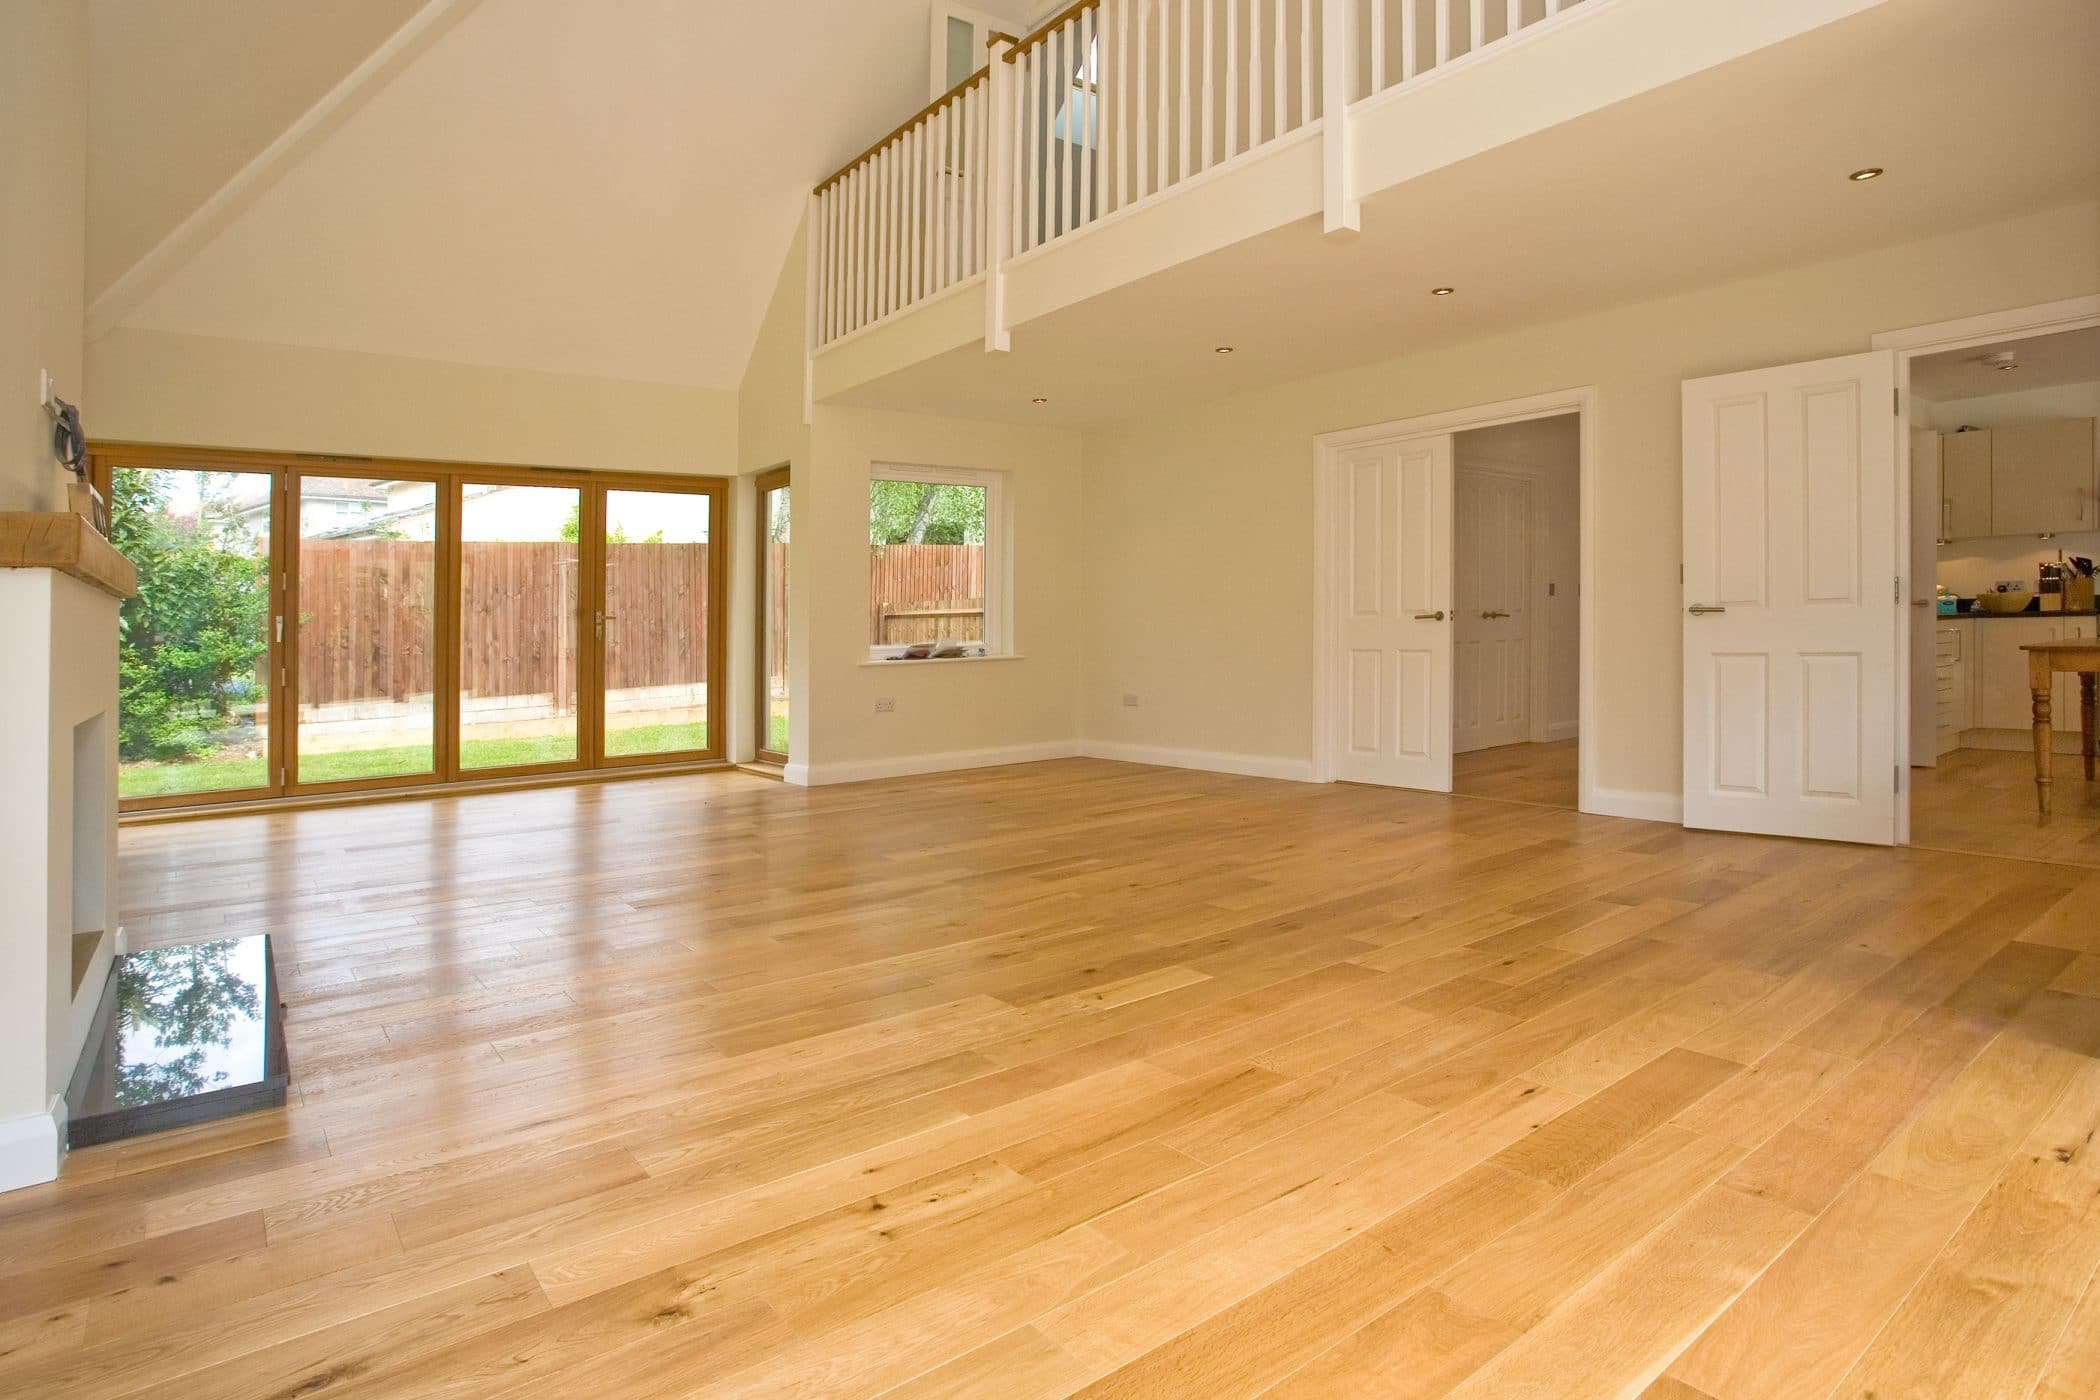 Engineered wood flooring manufactured and installed by UK Wood Floors